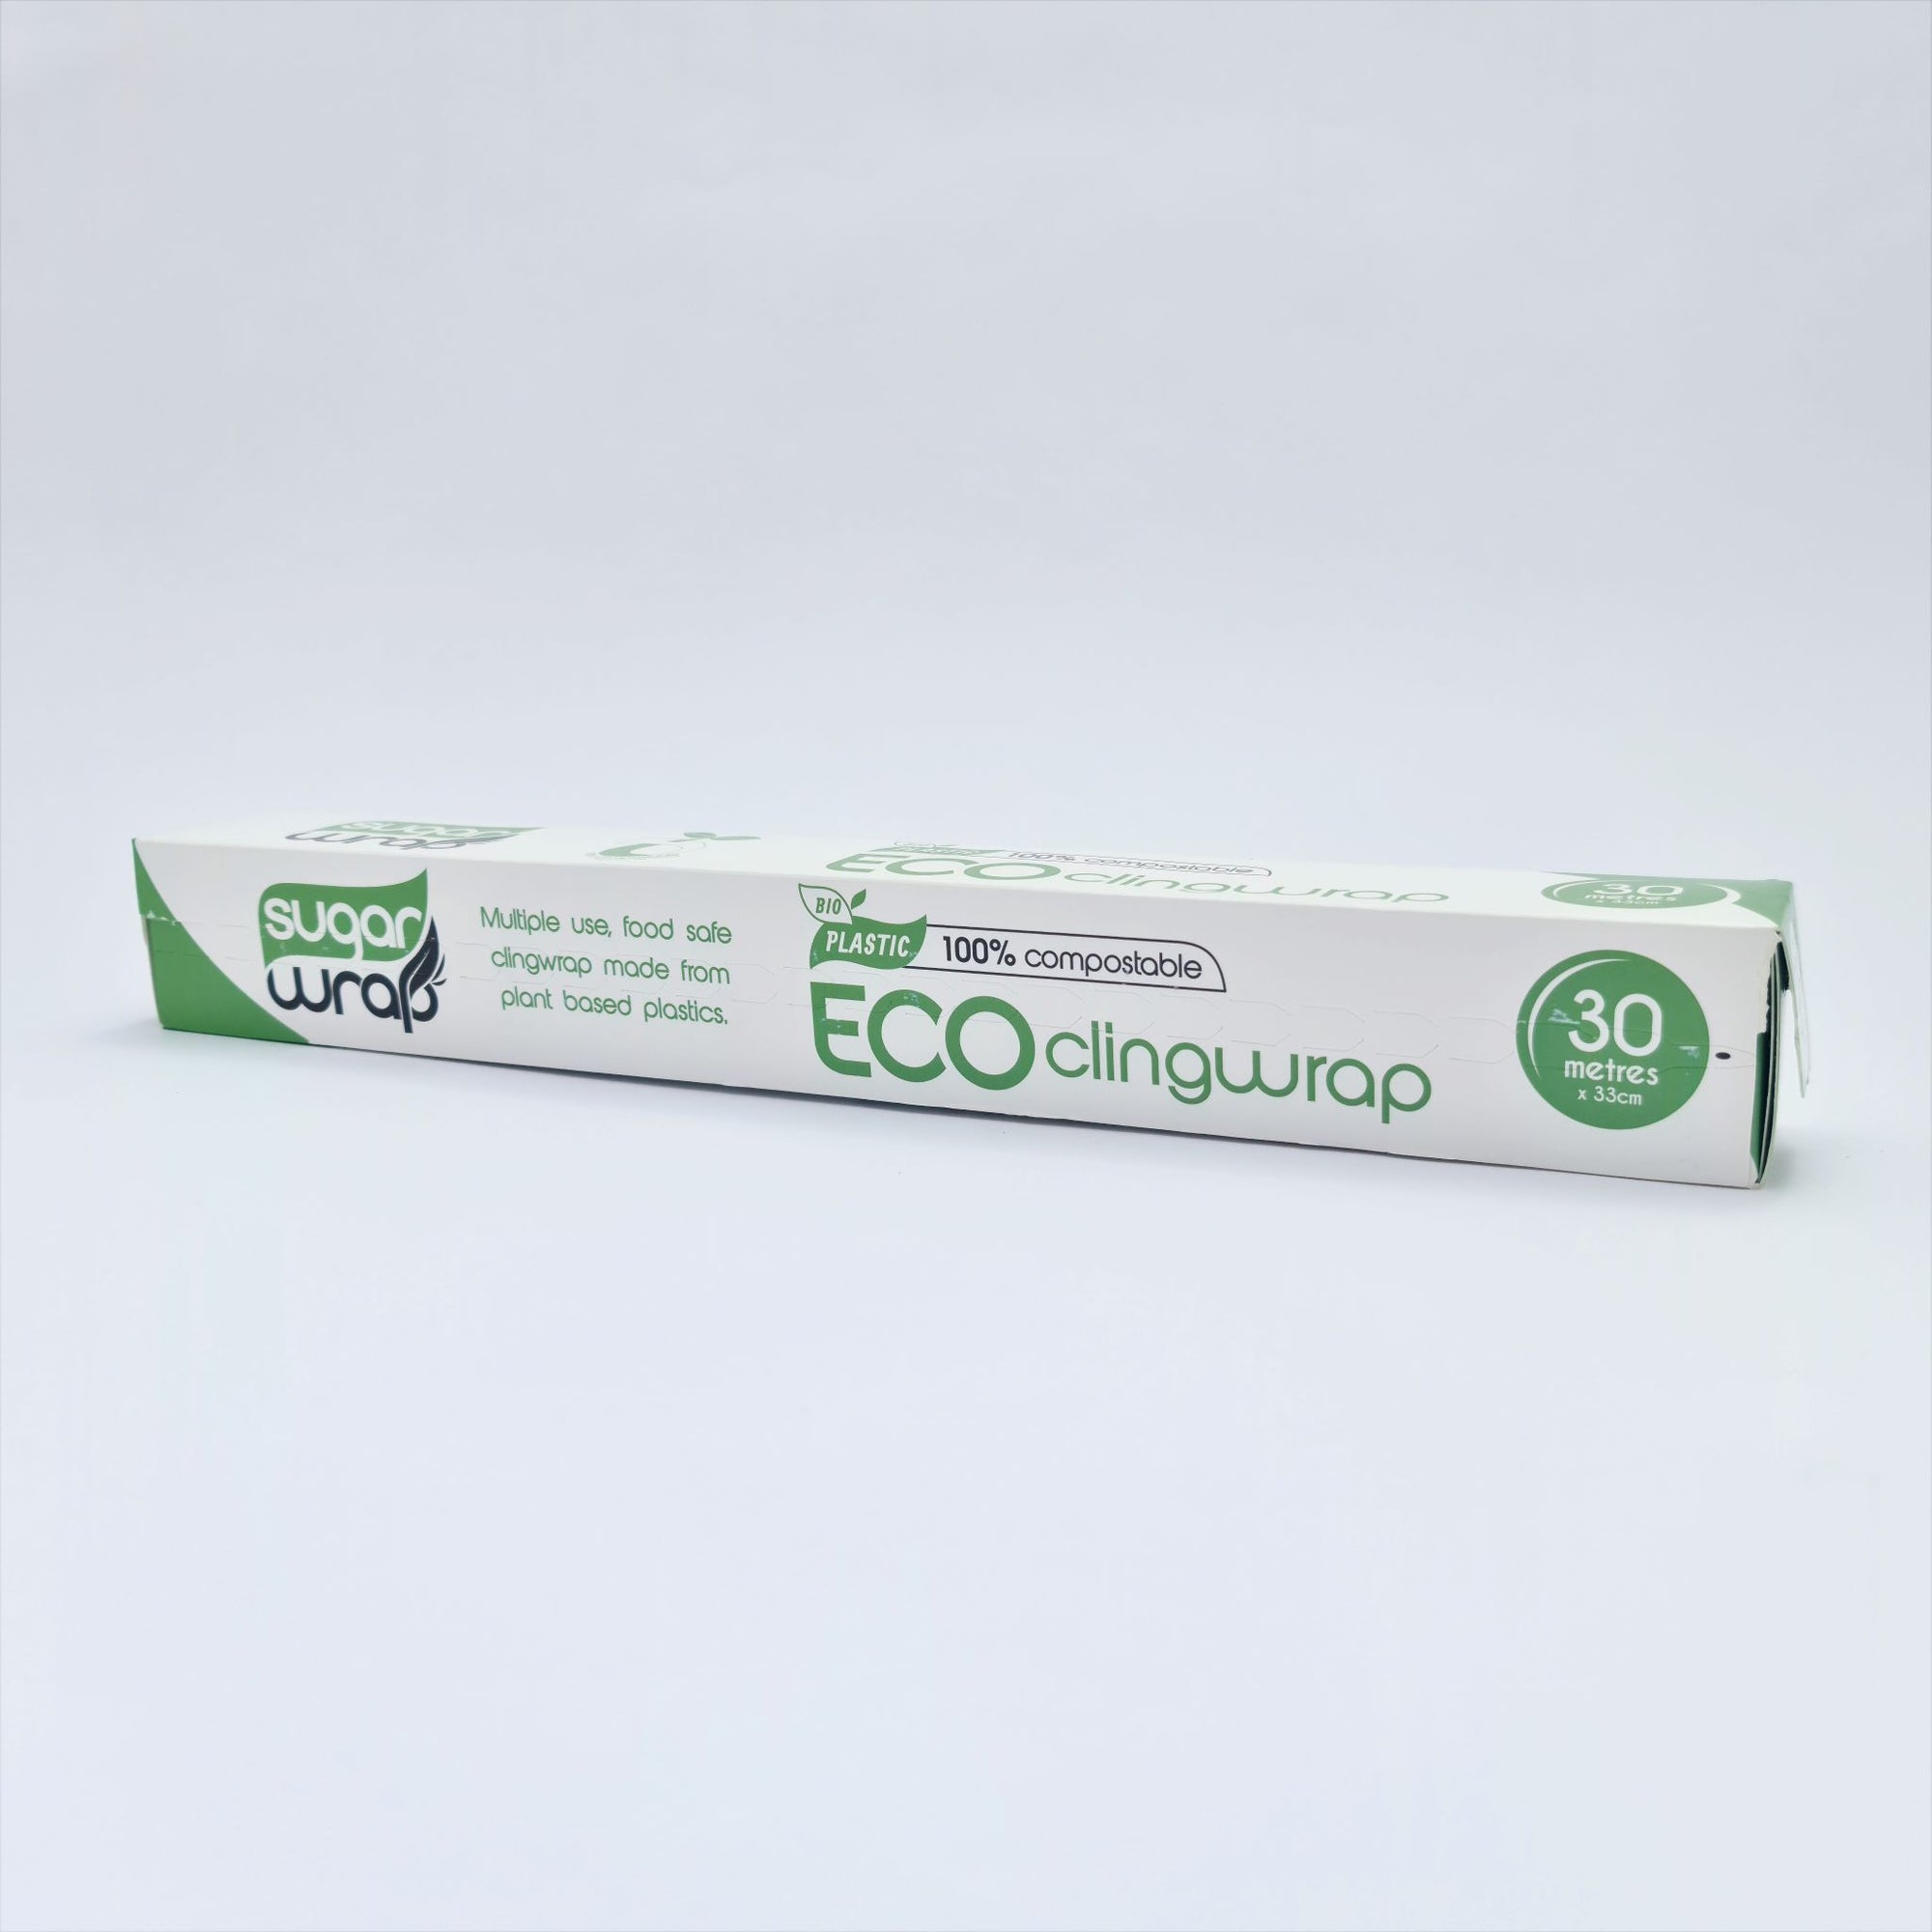 Compostable Eco Cling Wrap